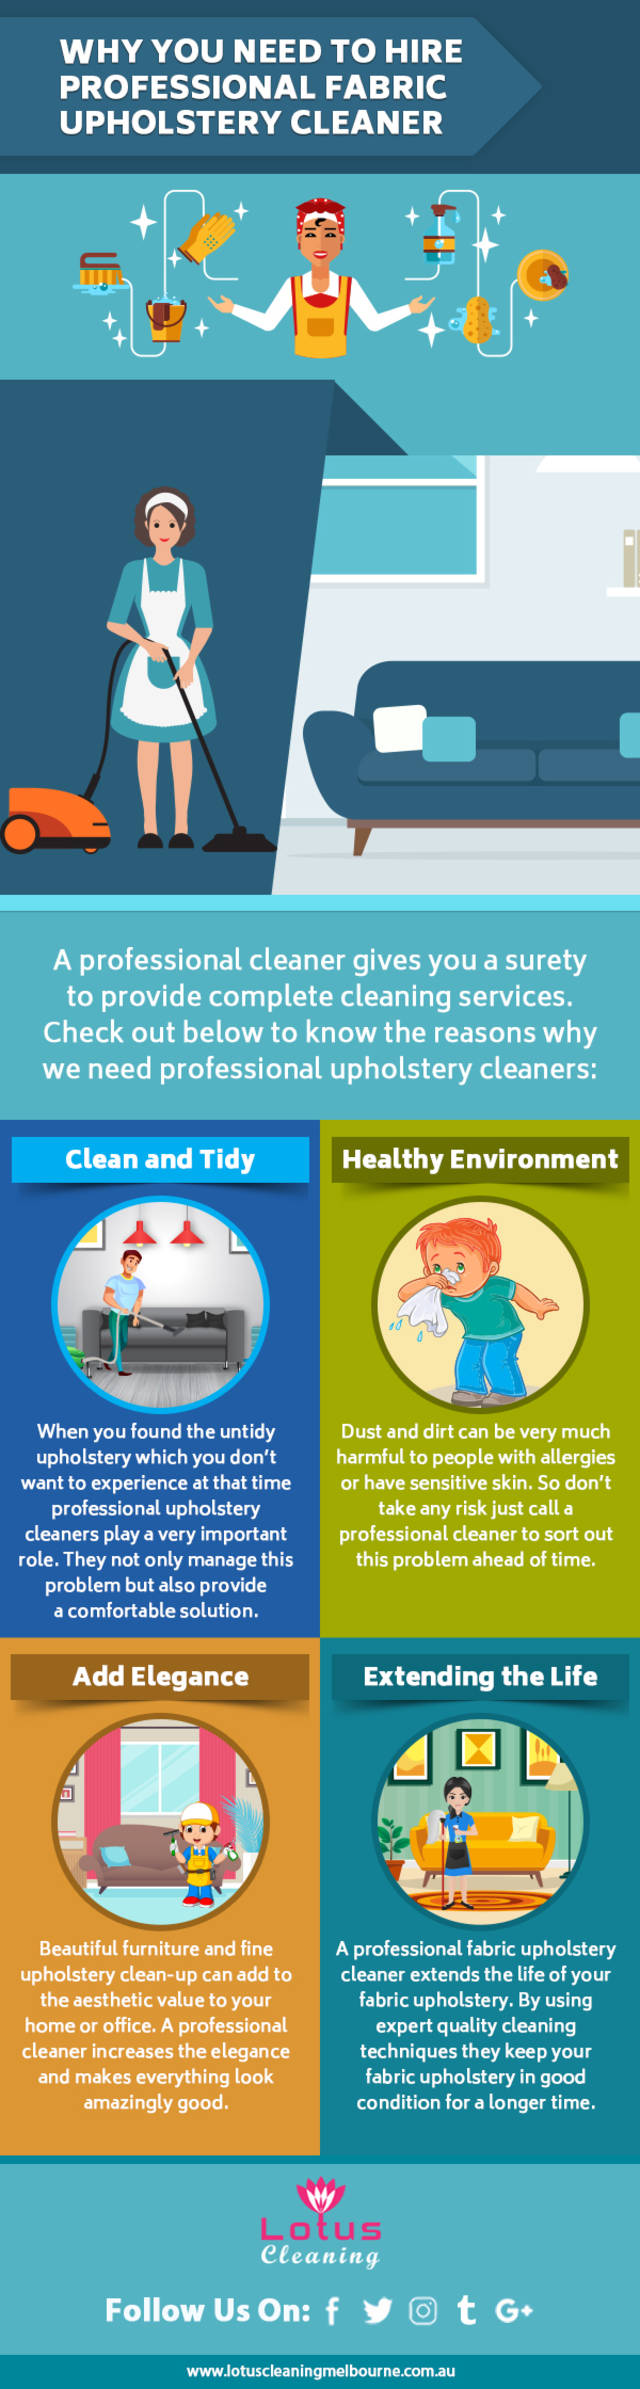 Why you need to hire professional fabric upholstery cleaner